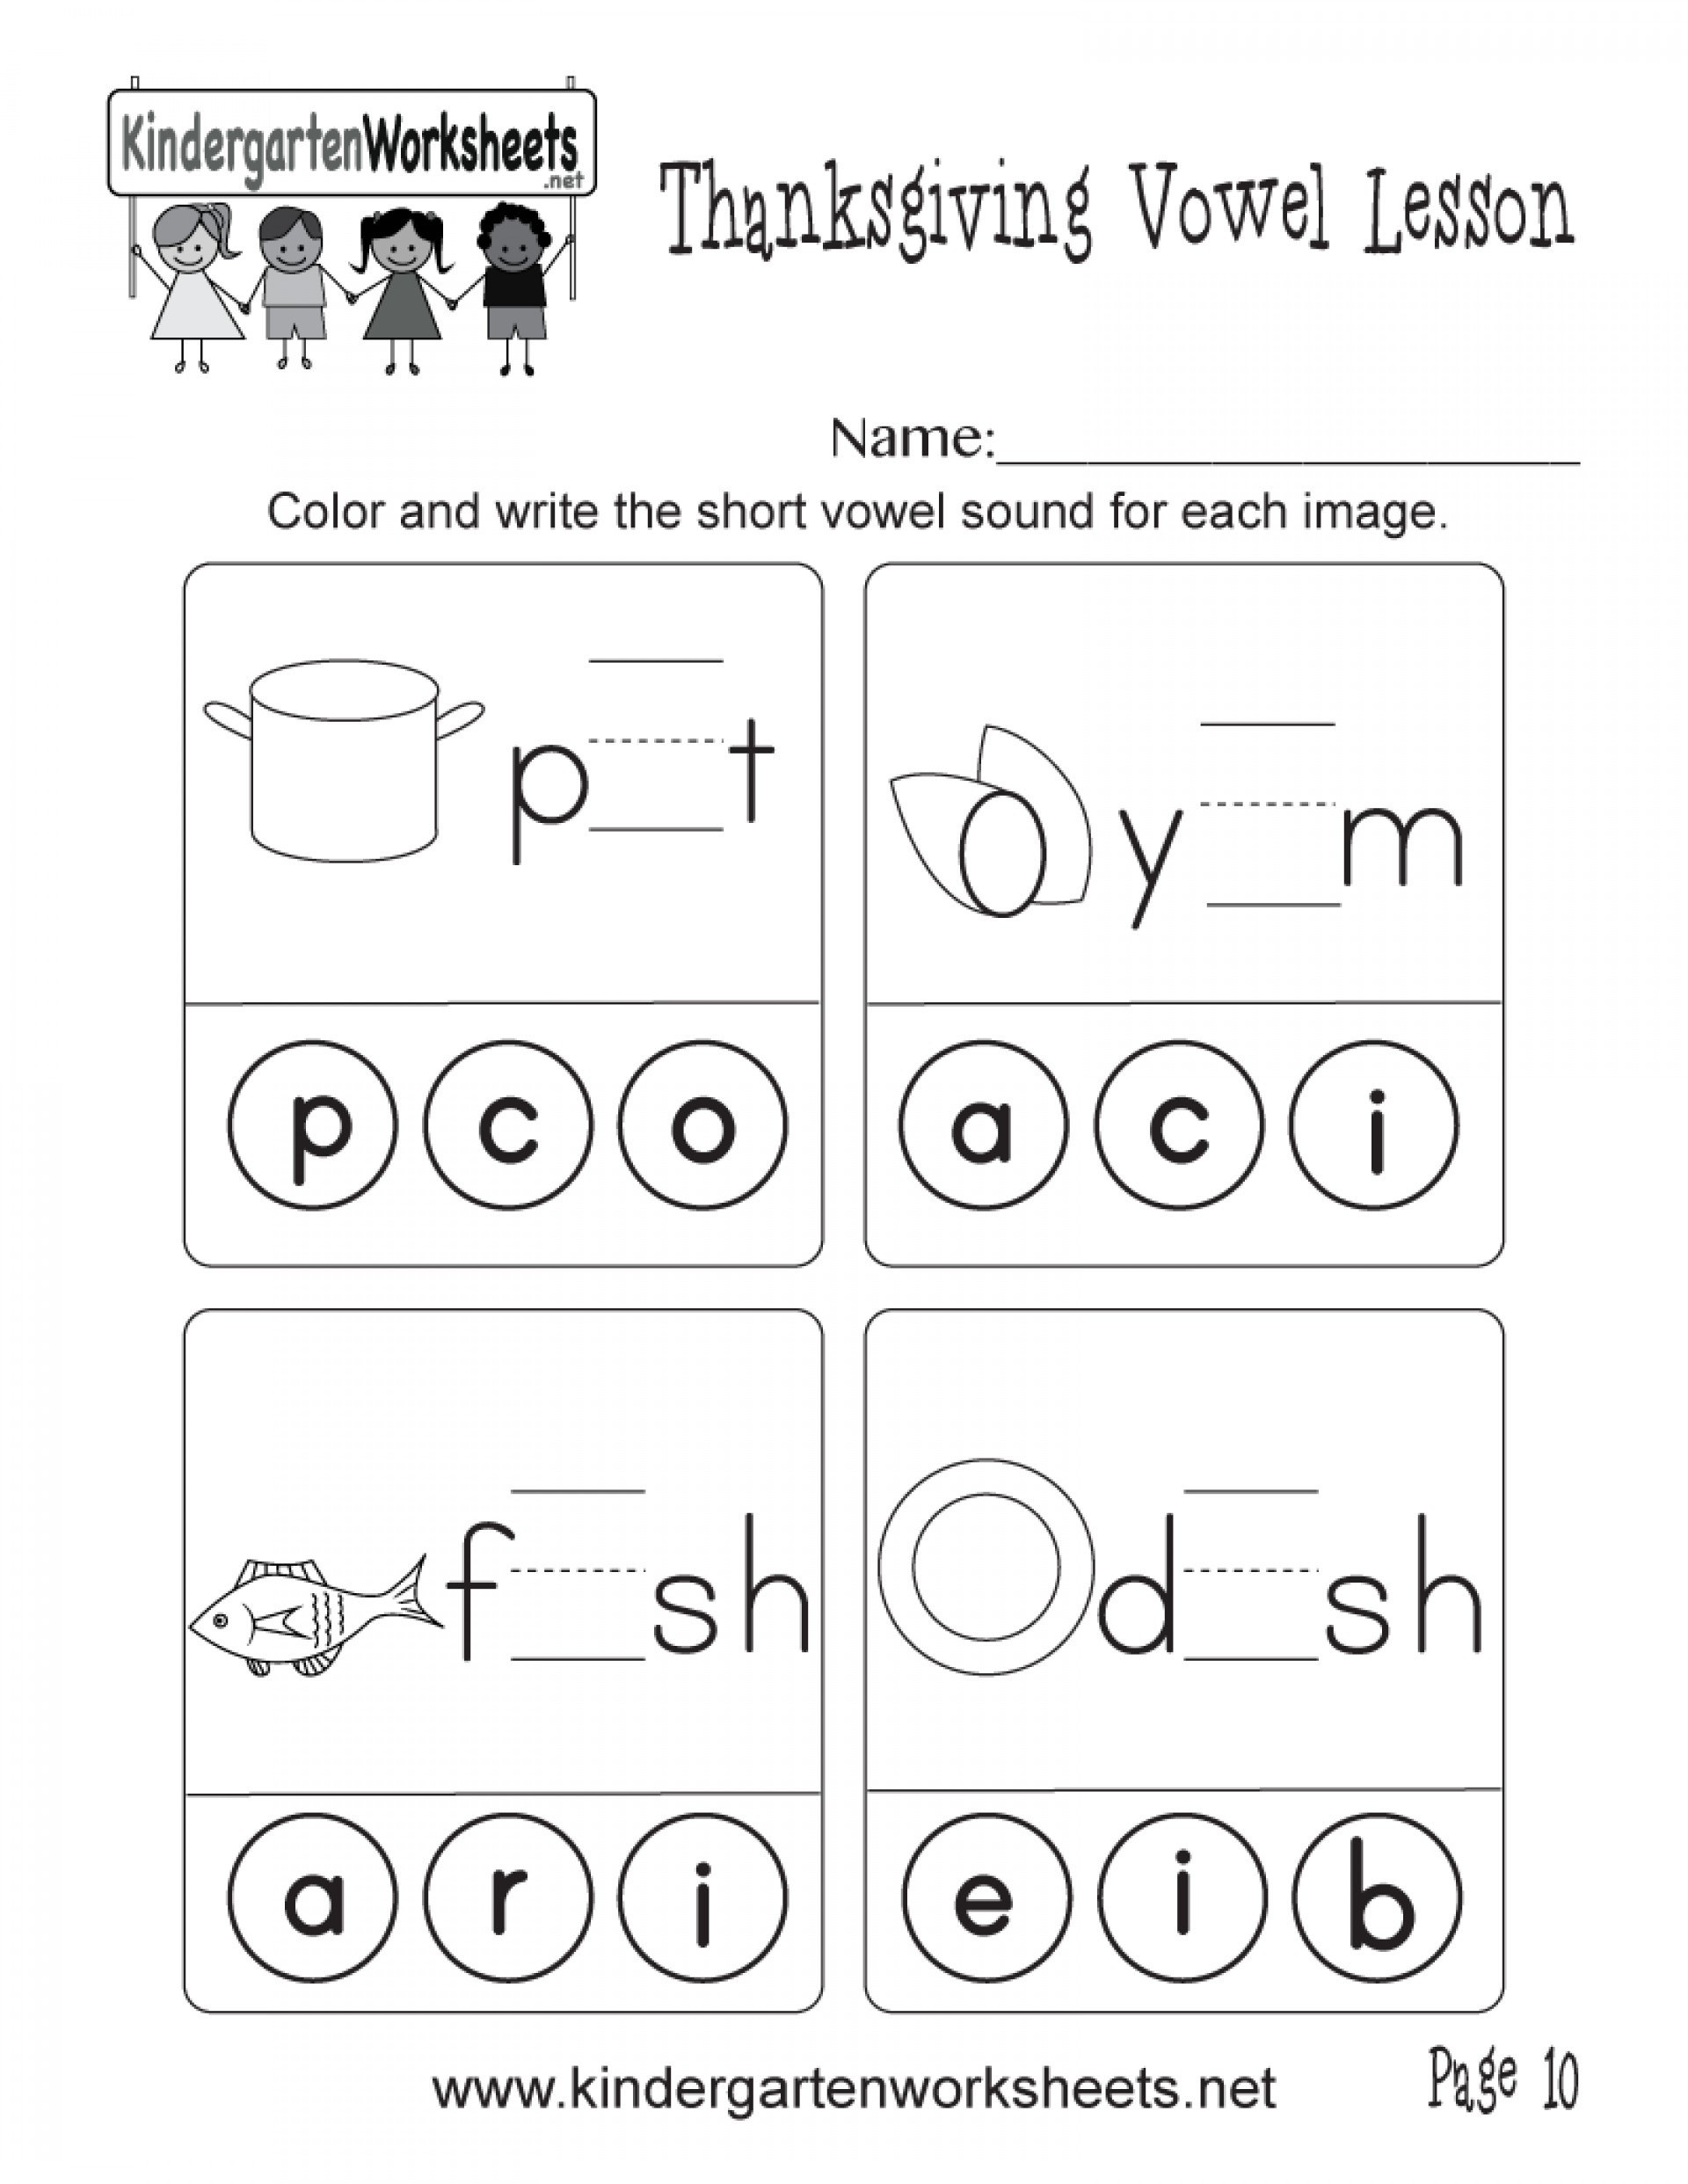 Short Vowel Worksheets 1st Grade Math Worksheet Printable Short Vowel Worksheets 1st Grade